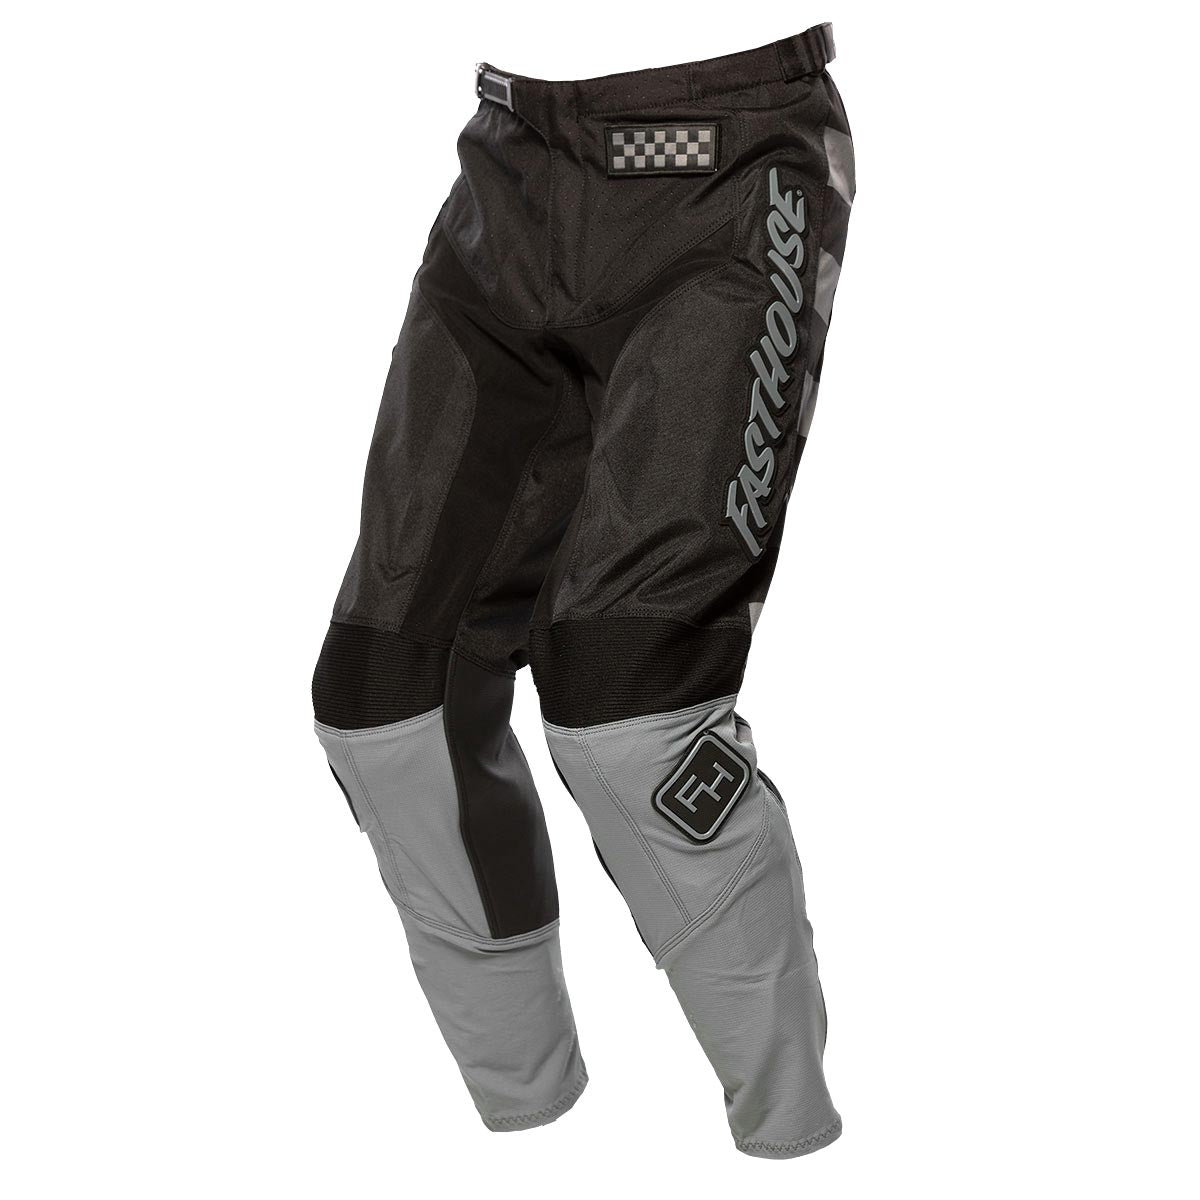 Grindhouse 2.0 Pants - Black/Charcoal